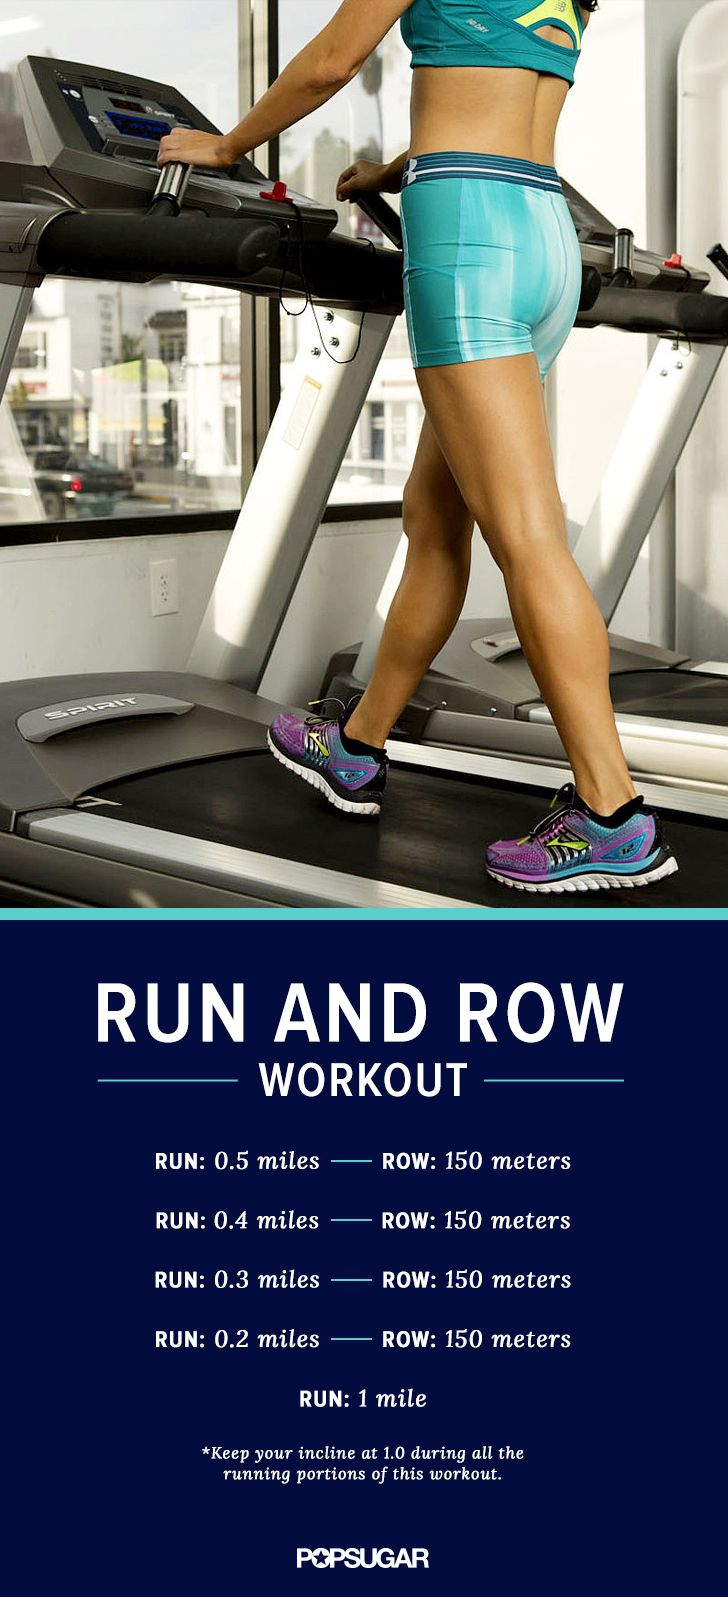 Even if you don't have an studio nearby, you can get a feel for the class at your gym with this cardio workout inspired by my very first Orangetheory experience. You'll be running back and forth from the treadmill to the rowing machine, so get ready to move and feel the burn!